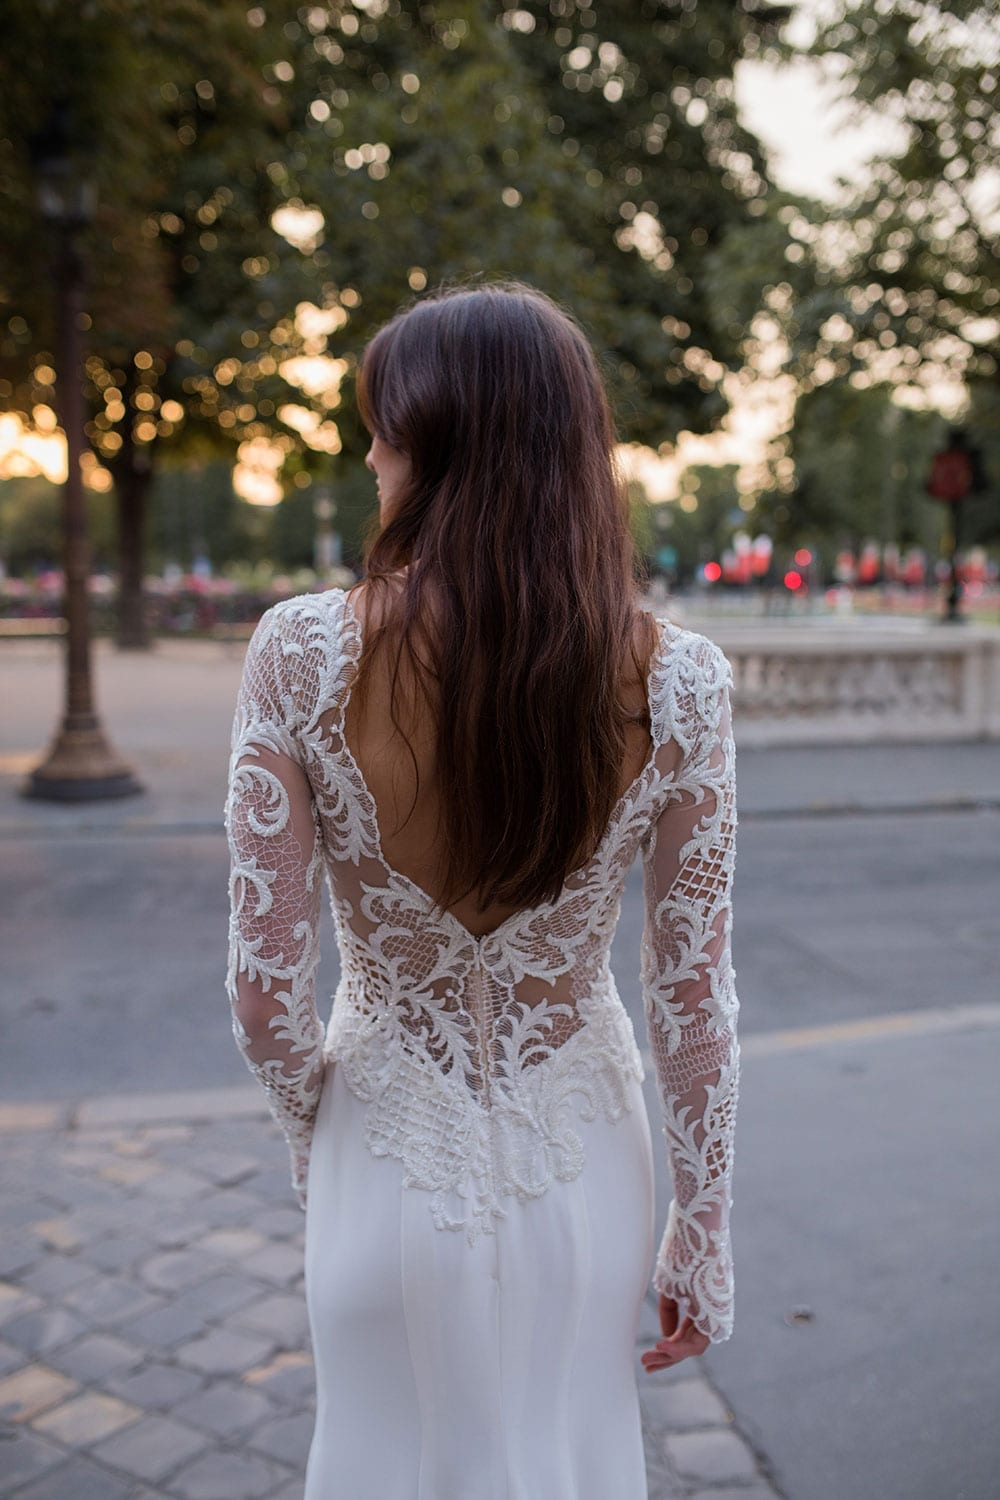 Model wearing Vinka Design Katrina Wedding Dress, a Sheer Beaded Lace Wedding Gown from behind showing back detail